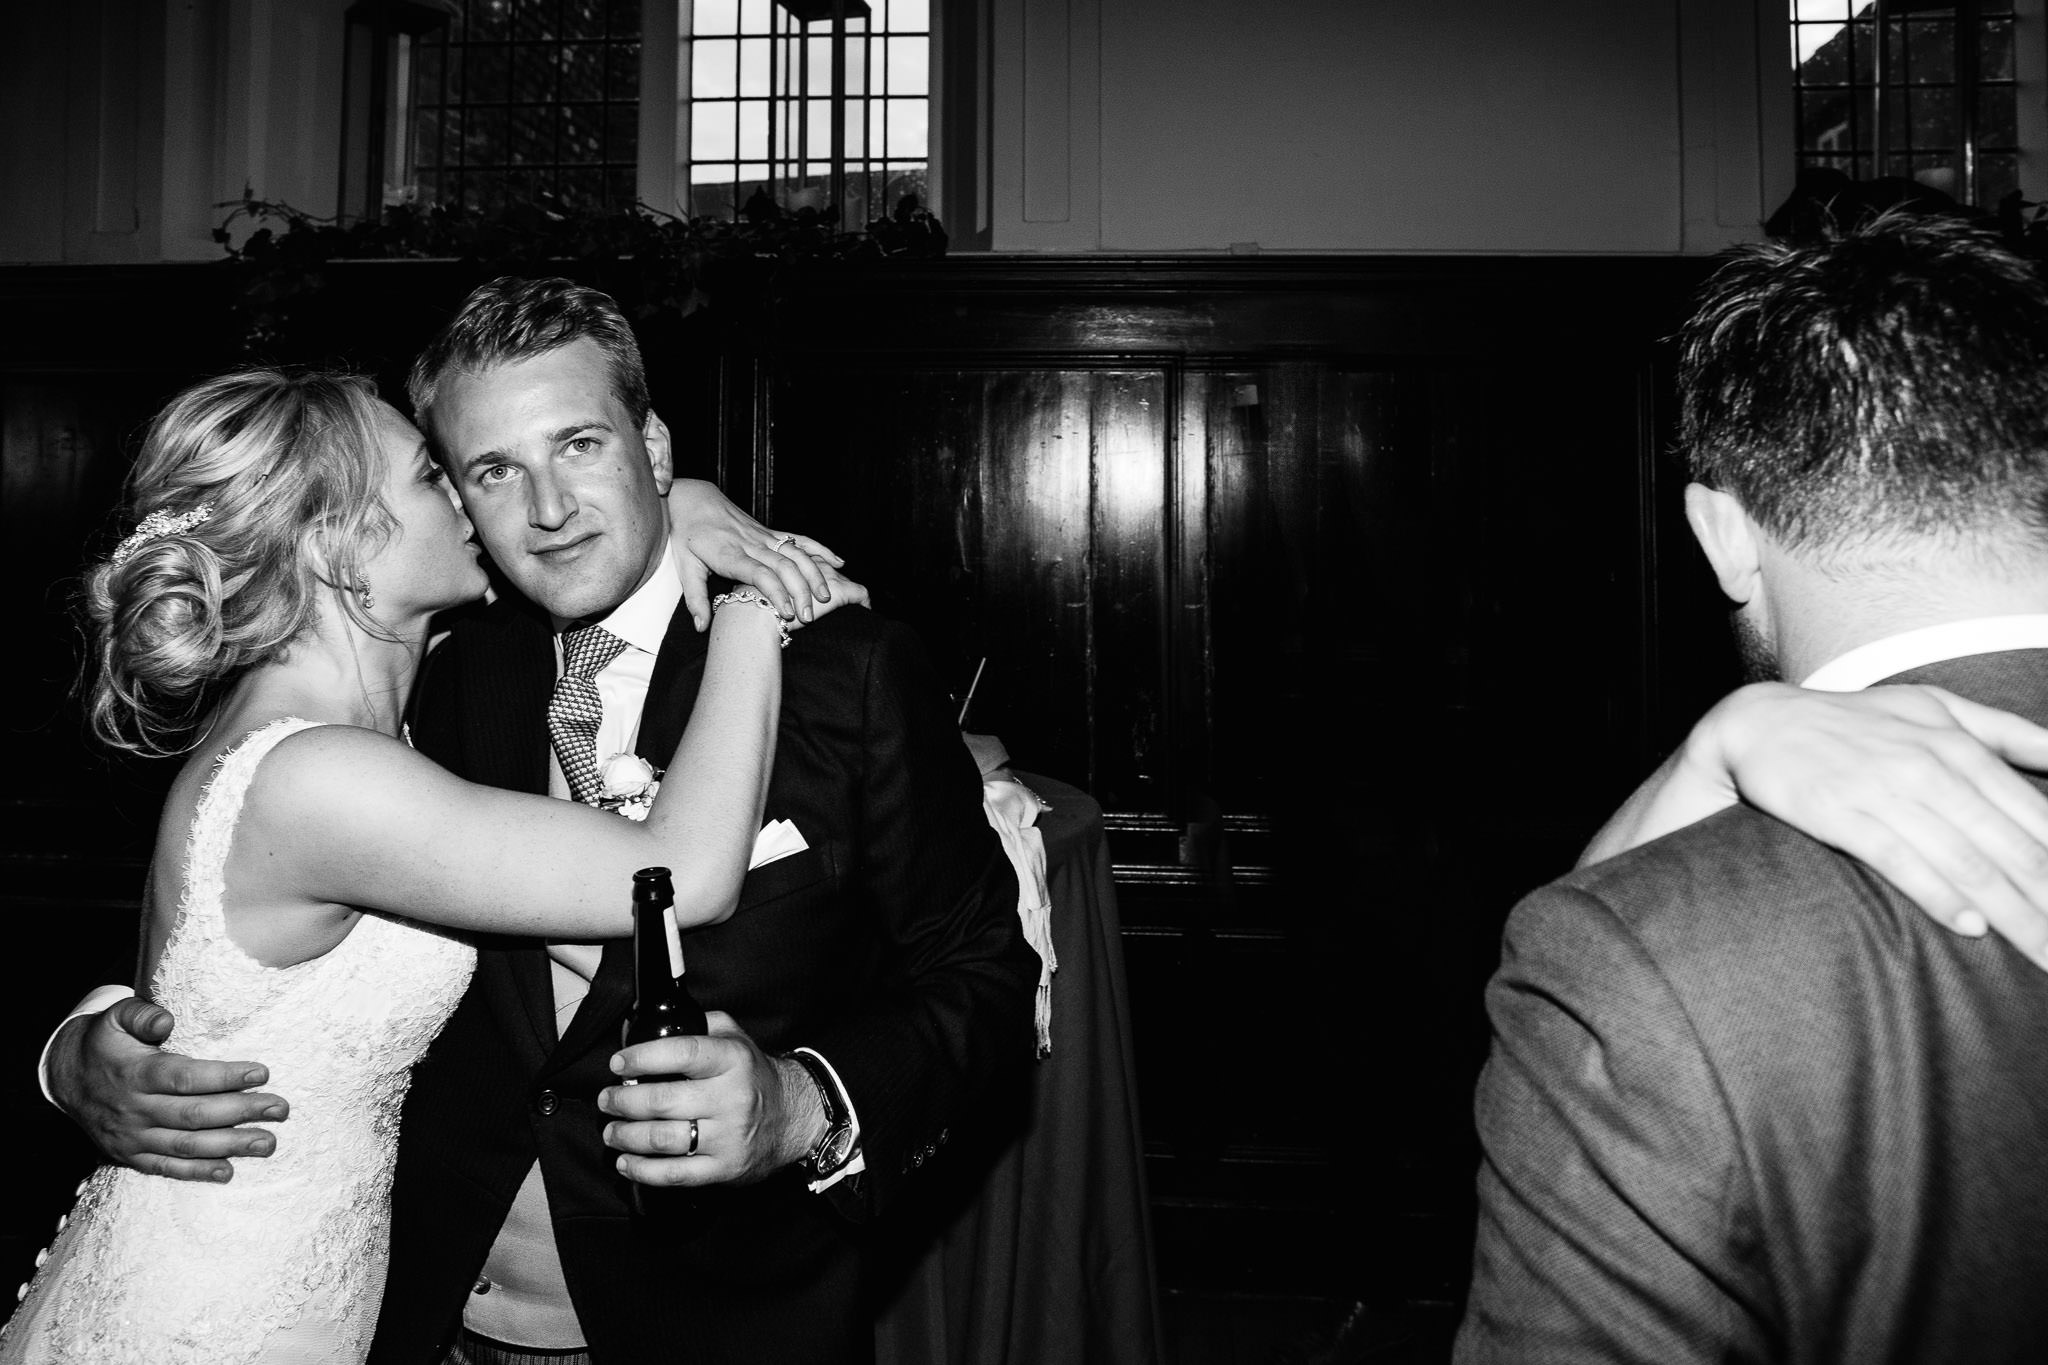 candid fun documentary wedding photography brighton and london